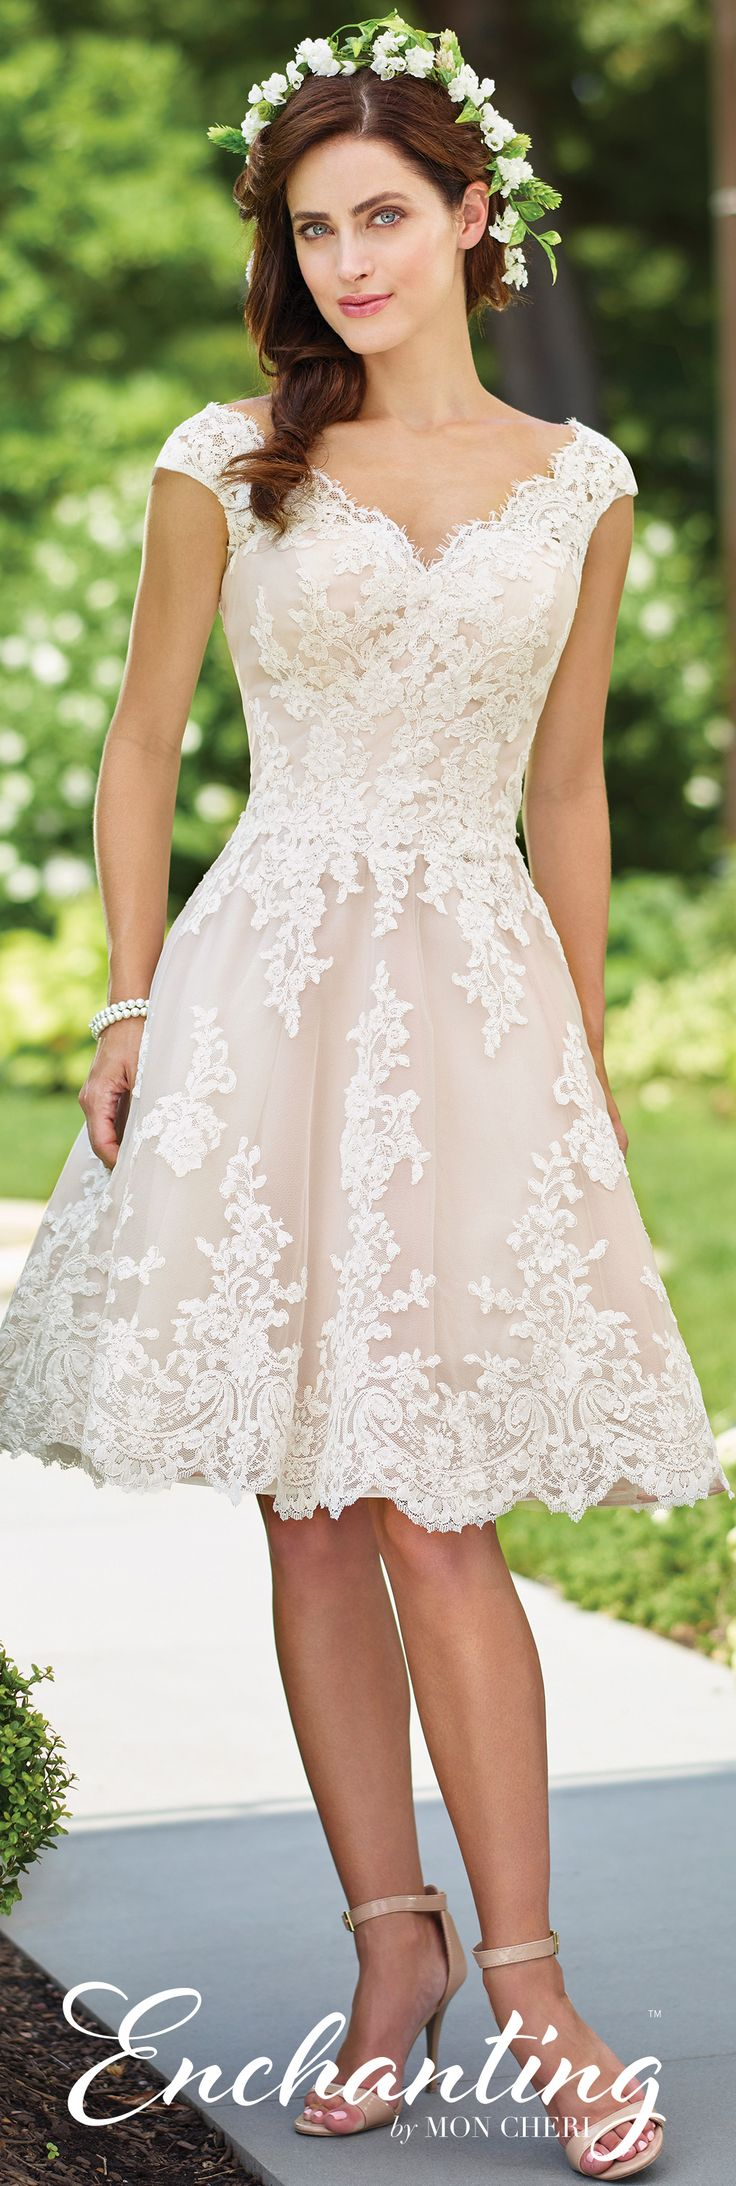 25 best ideas about short lace dress on pinterest white for No back wedding dress